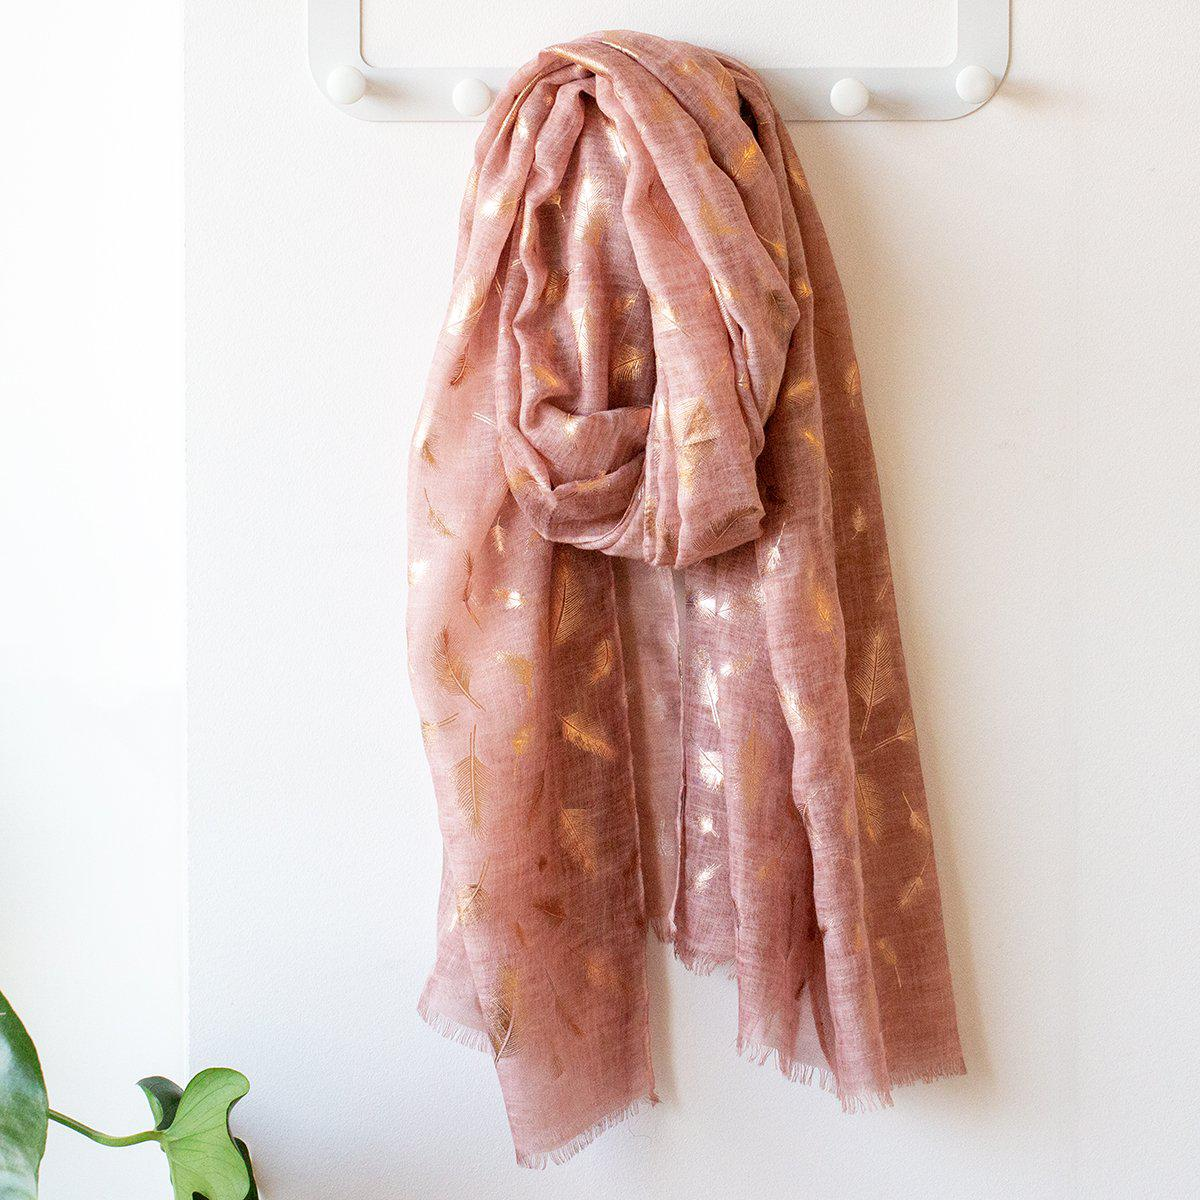 thinking-of-you-foil-effect-letterbox-scarf-gift